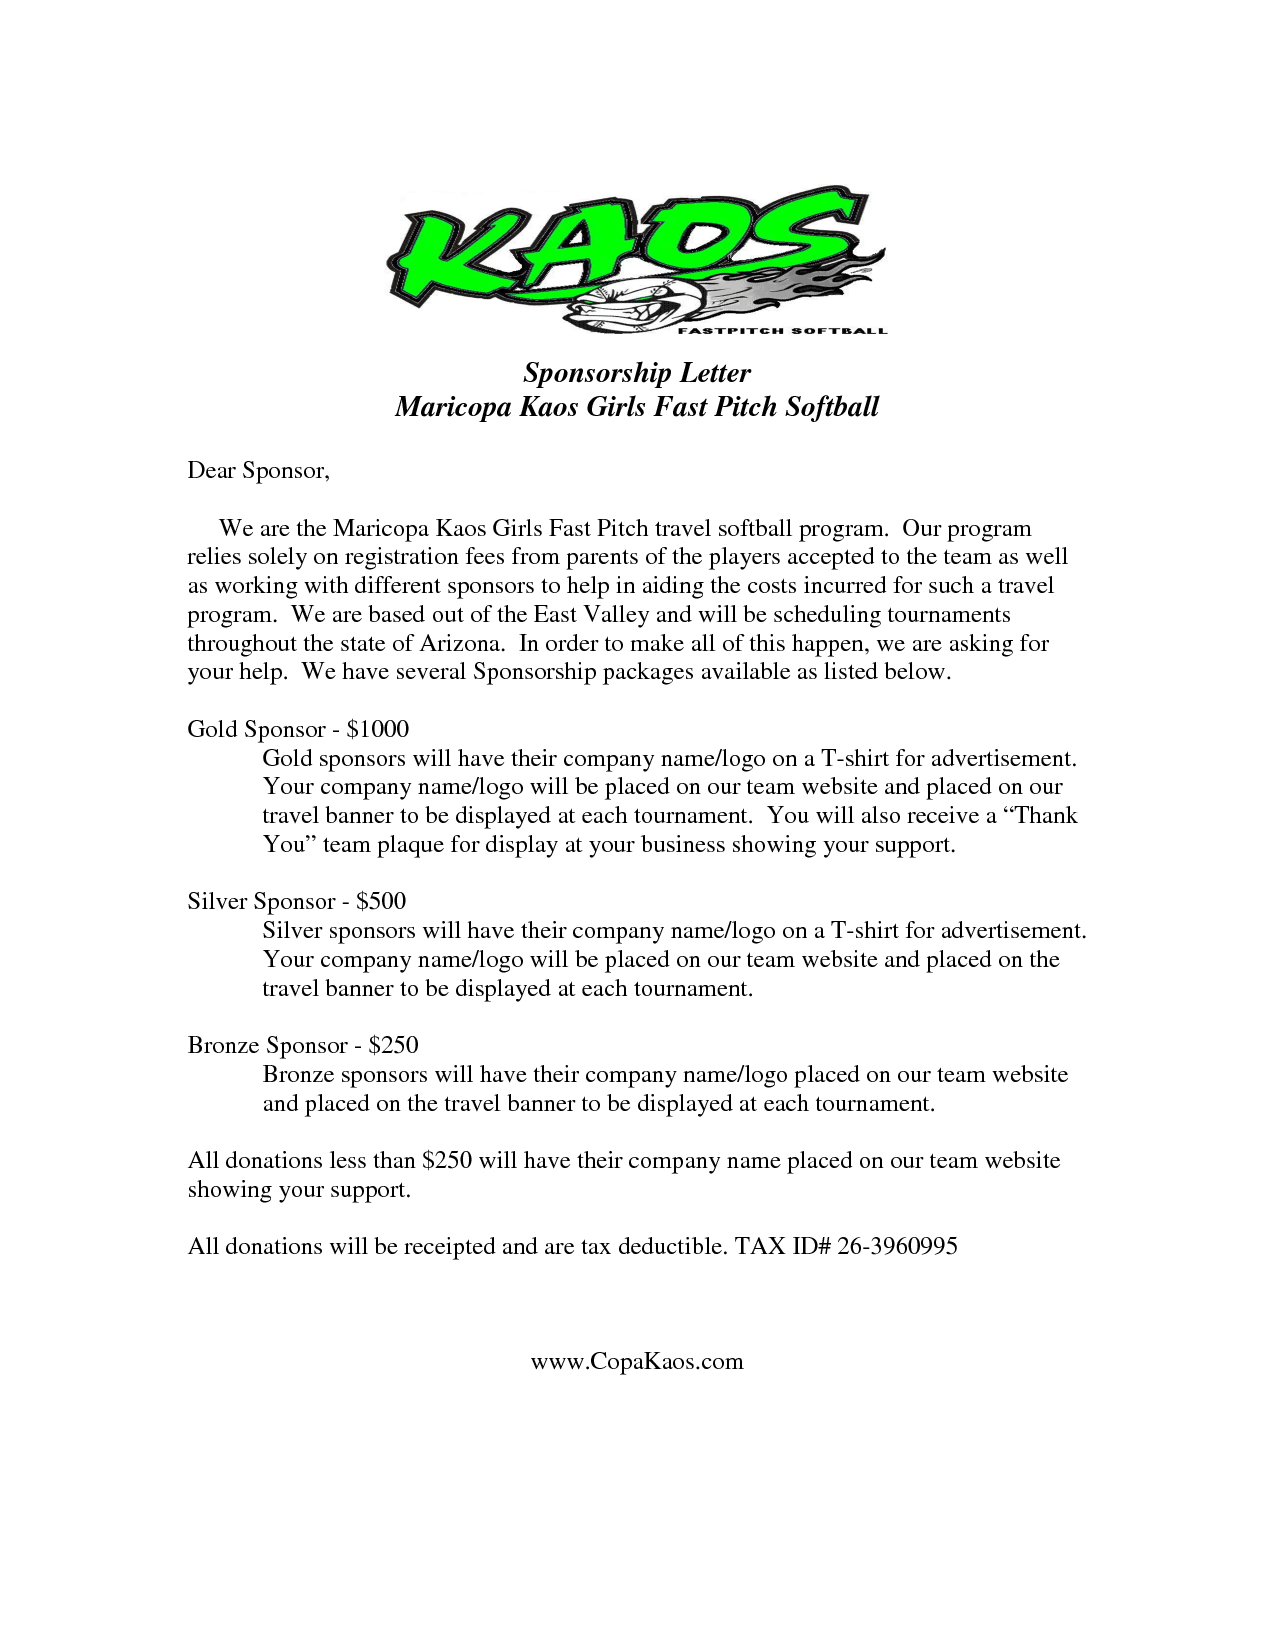 Youth Baseball Sponsorship Letter Template - Image Result for Sample Sponsor Request Letter Donation